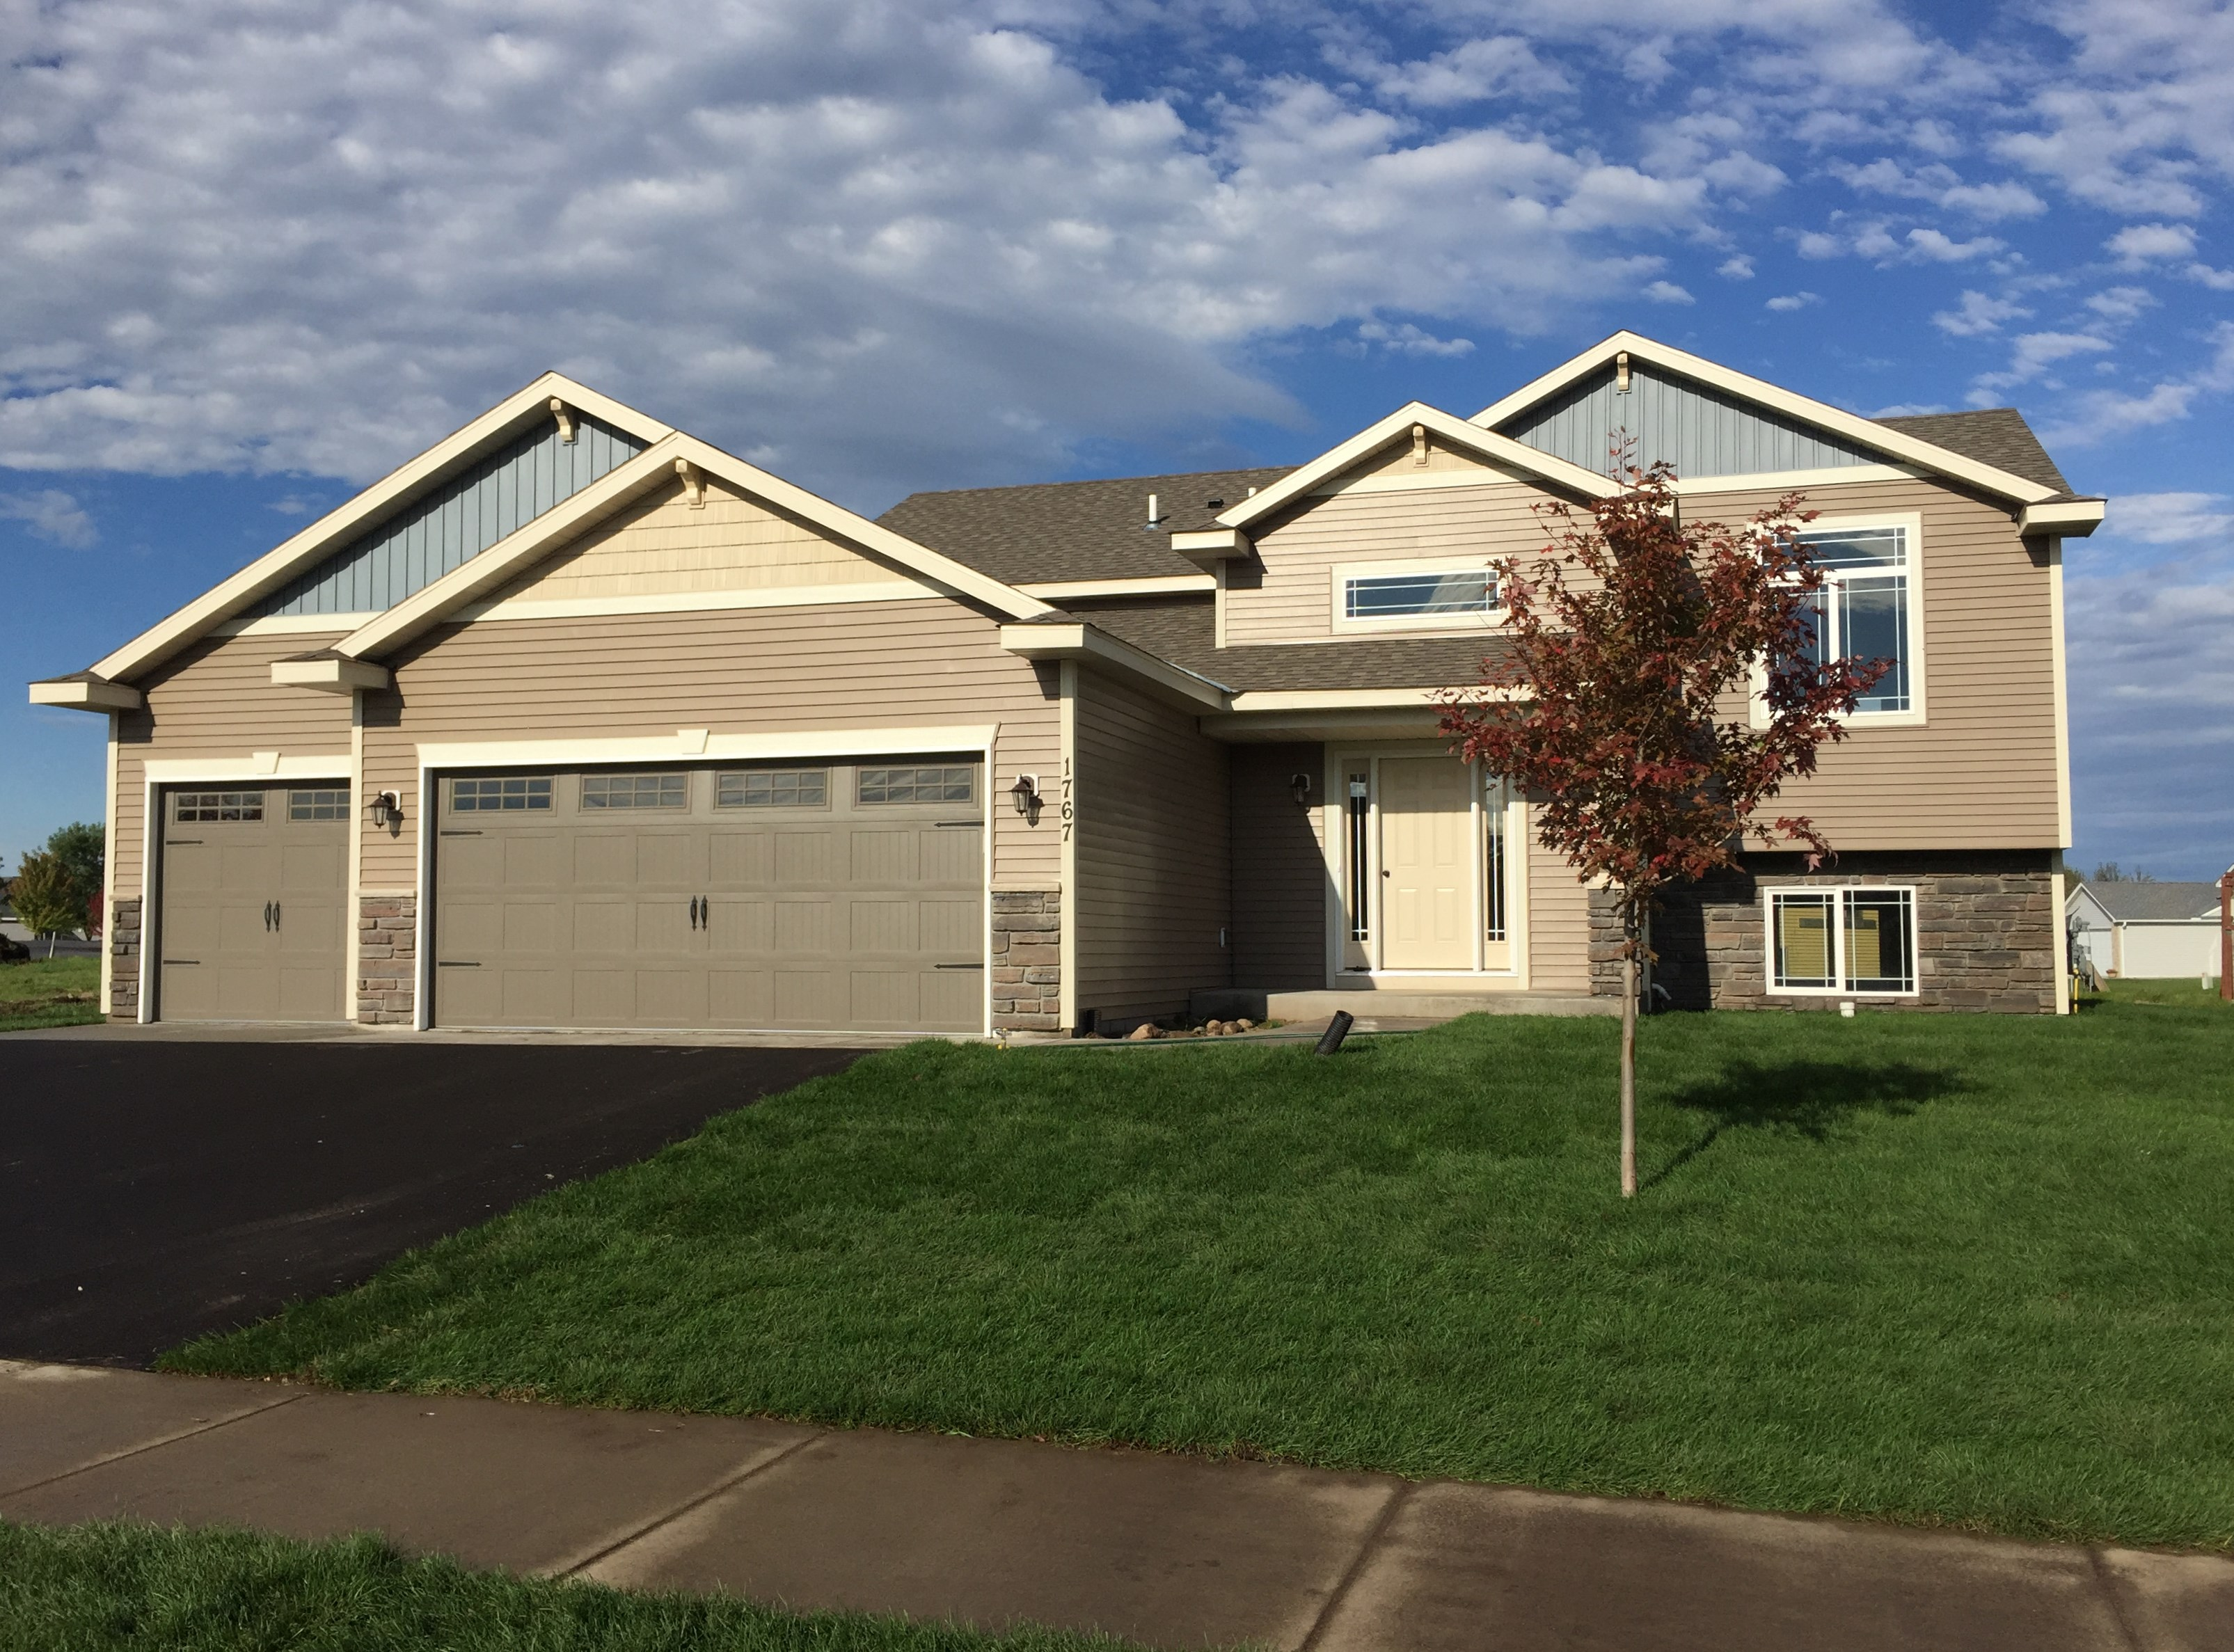 Our Hickory is a move-in ready home in St. Francis, MN located at 3419 236th Lane NW.